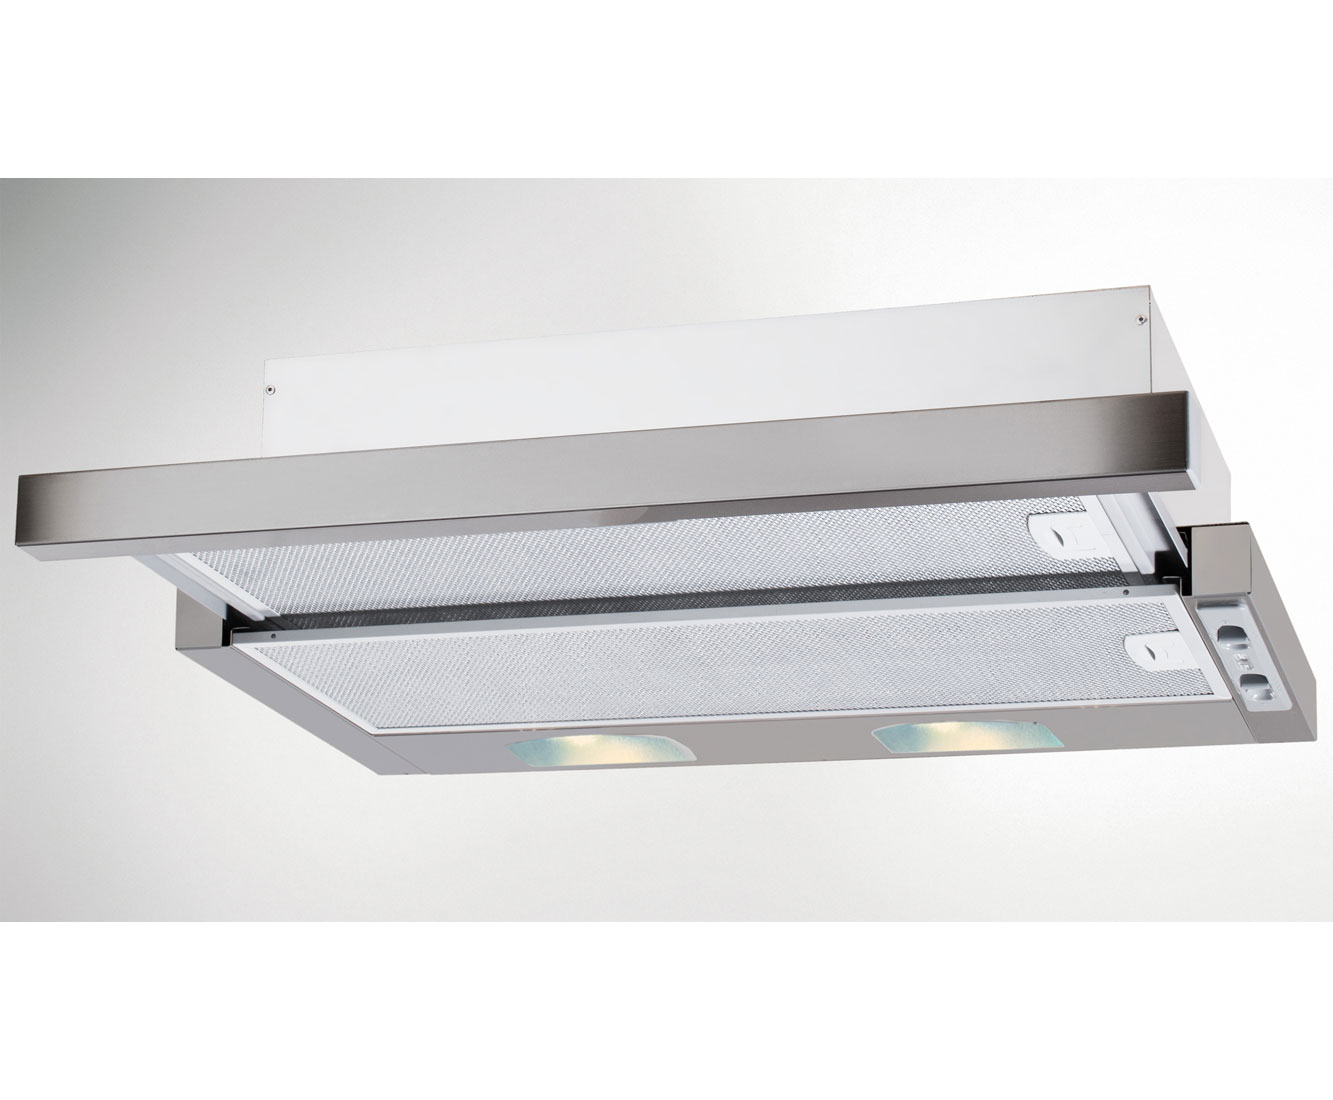 Beko CTB6254X Integrated Cooker Hood in Silver